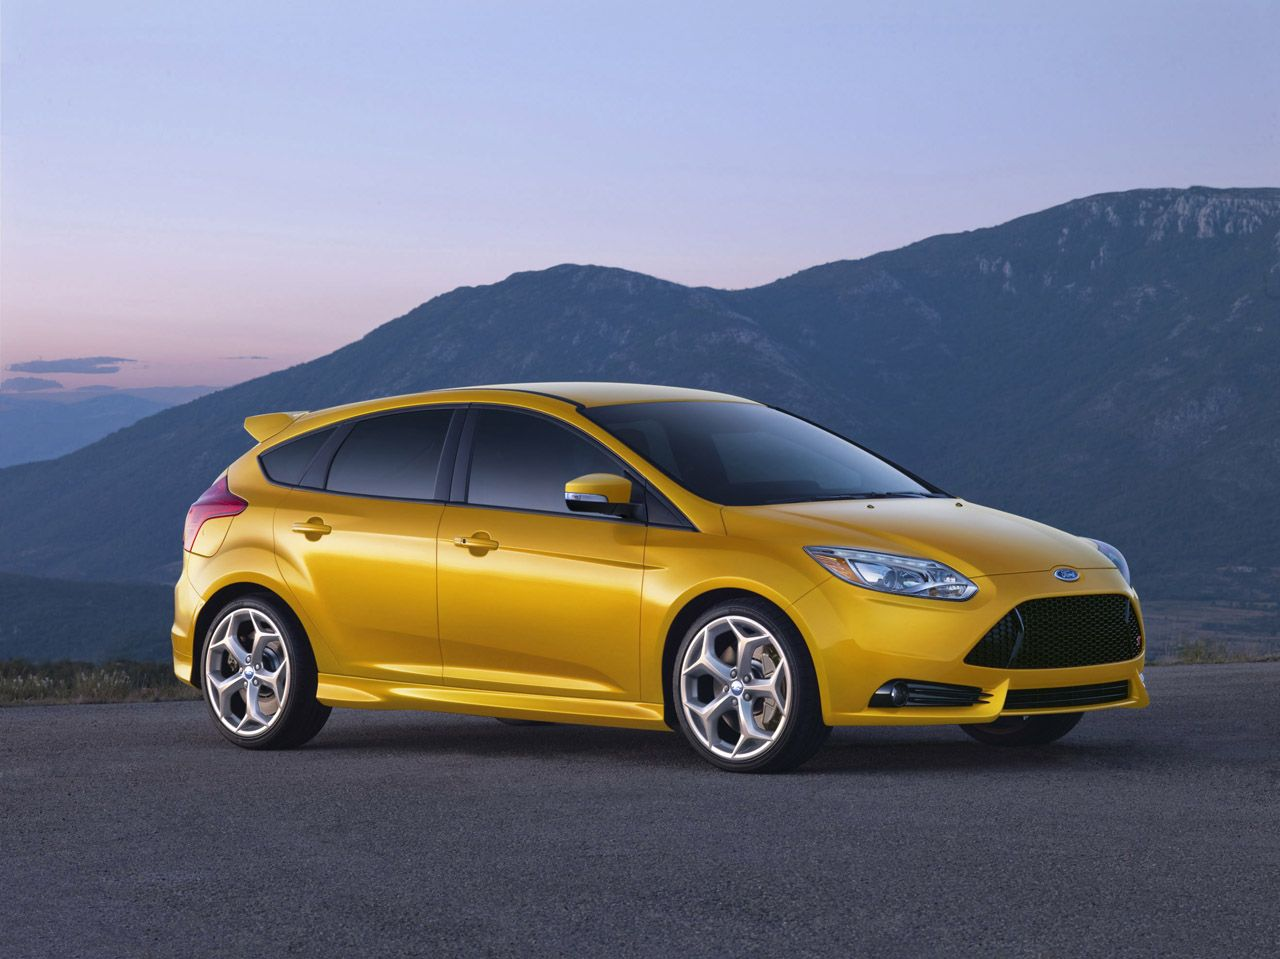 2013 Ford Focus St With Images Ford Focus St Ford Focus New Cars